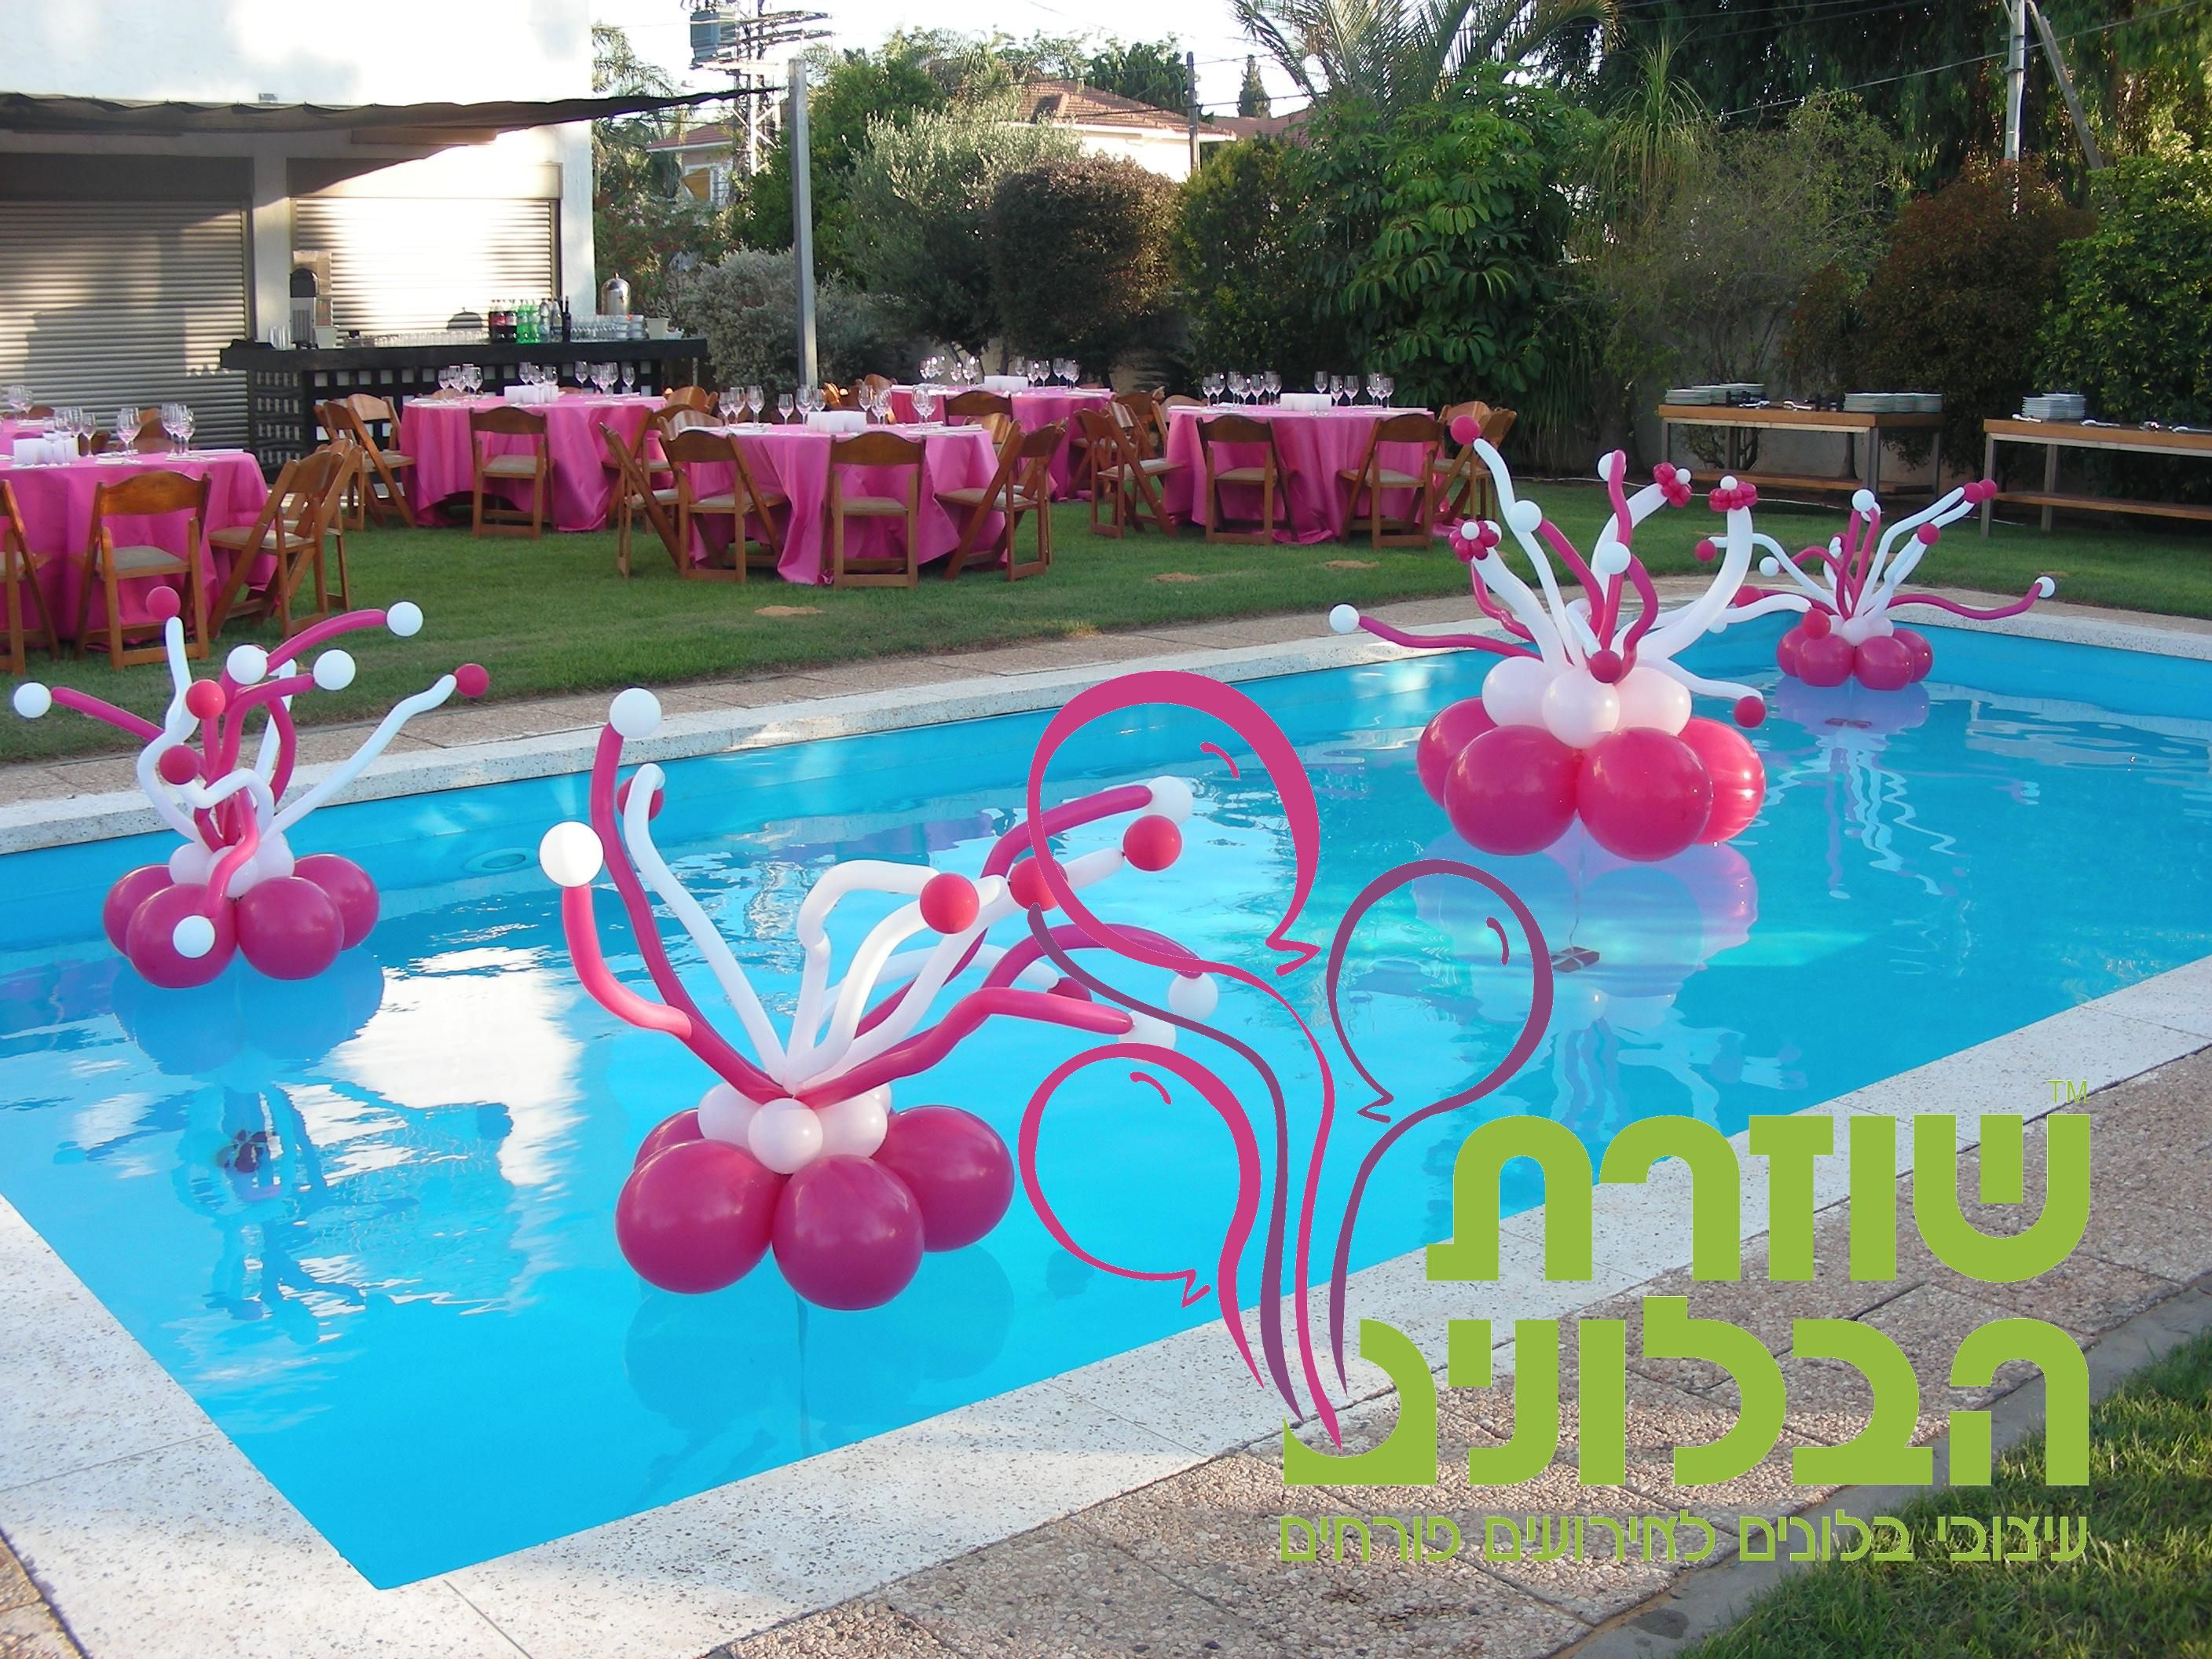 Balloon decoration for pool event http://www.